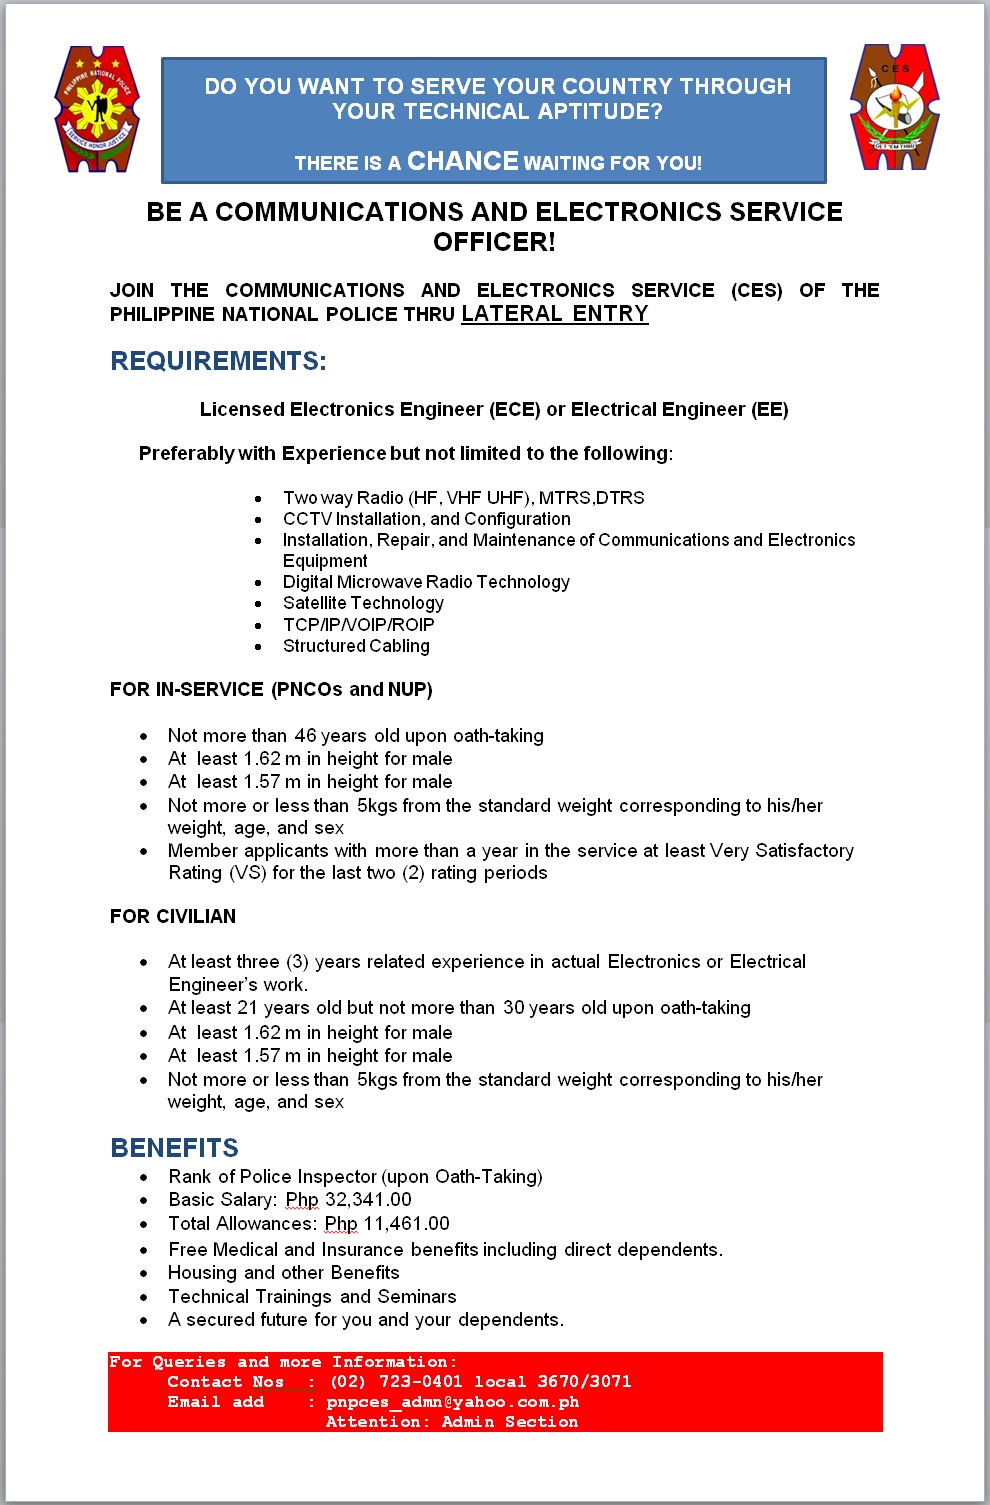 pnpces communications and electronics service lateral entry recruitment for calendar year 2017